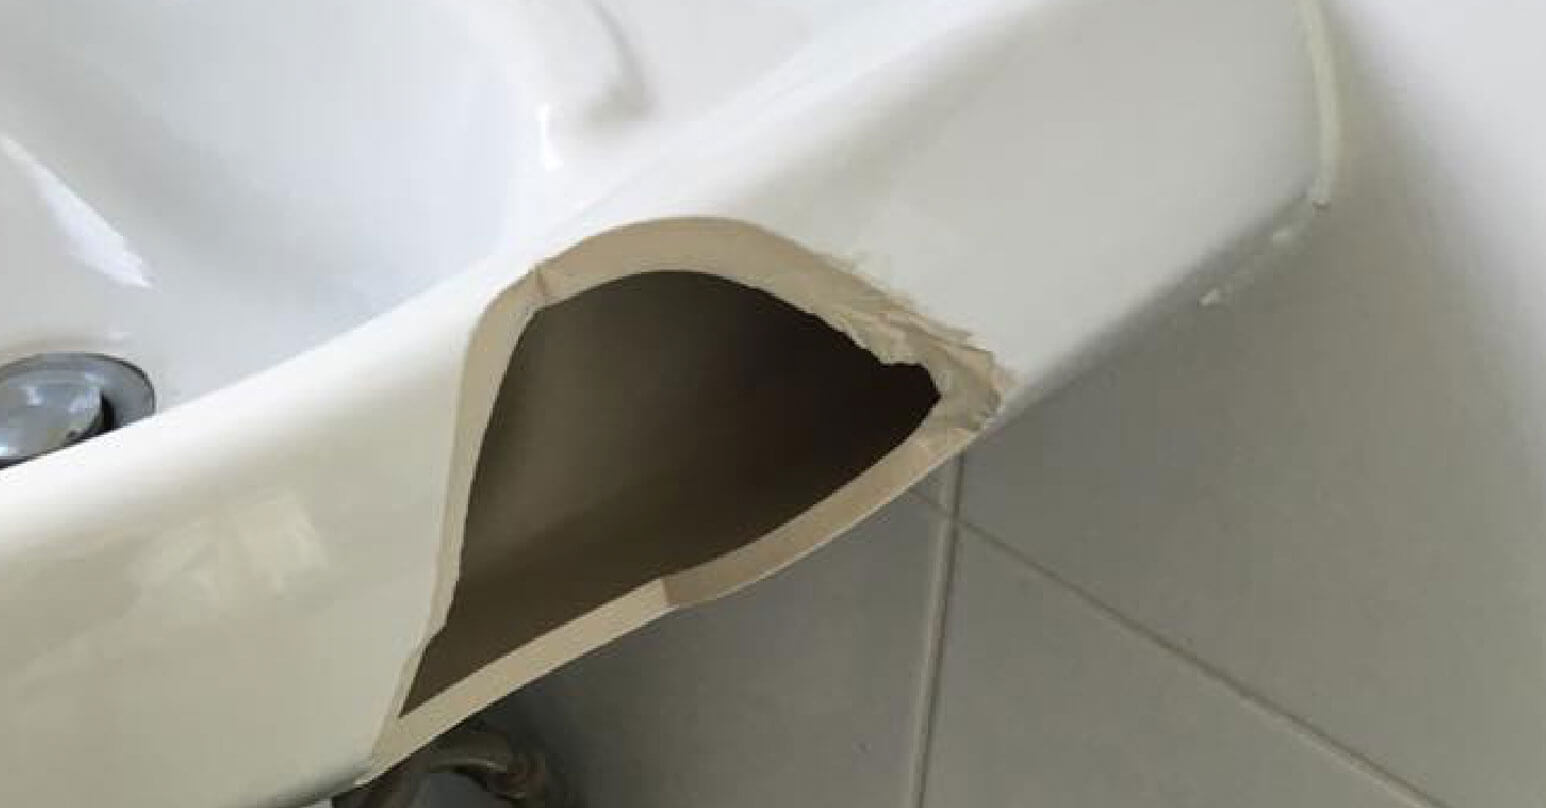 Large chip in sink